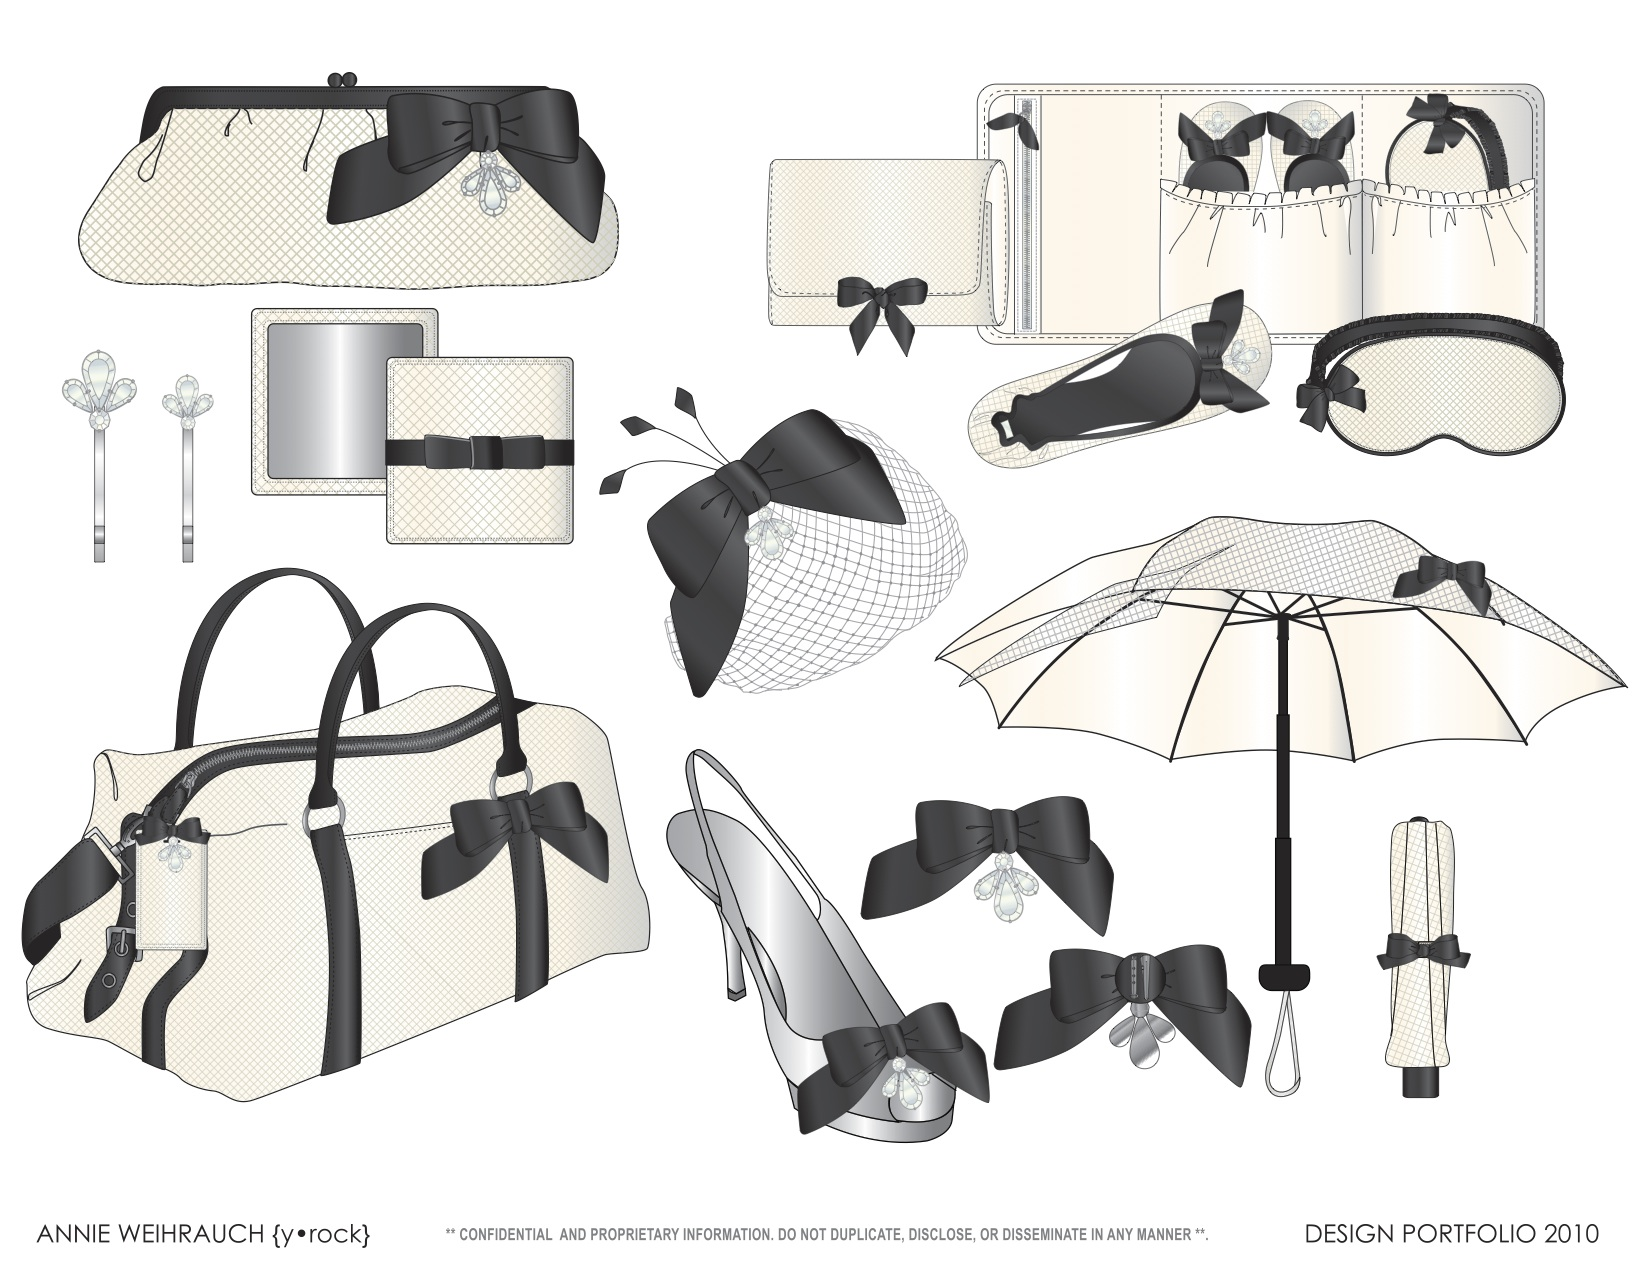 accessory design by annie weihrauch at. Black Bedroom Furniture Sets. Home Design Ideas